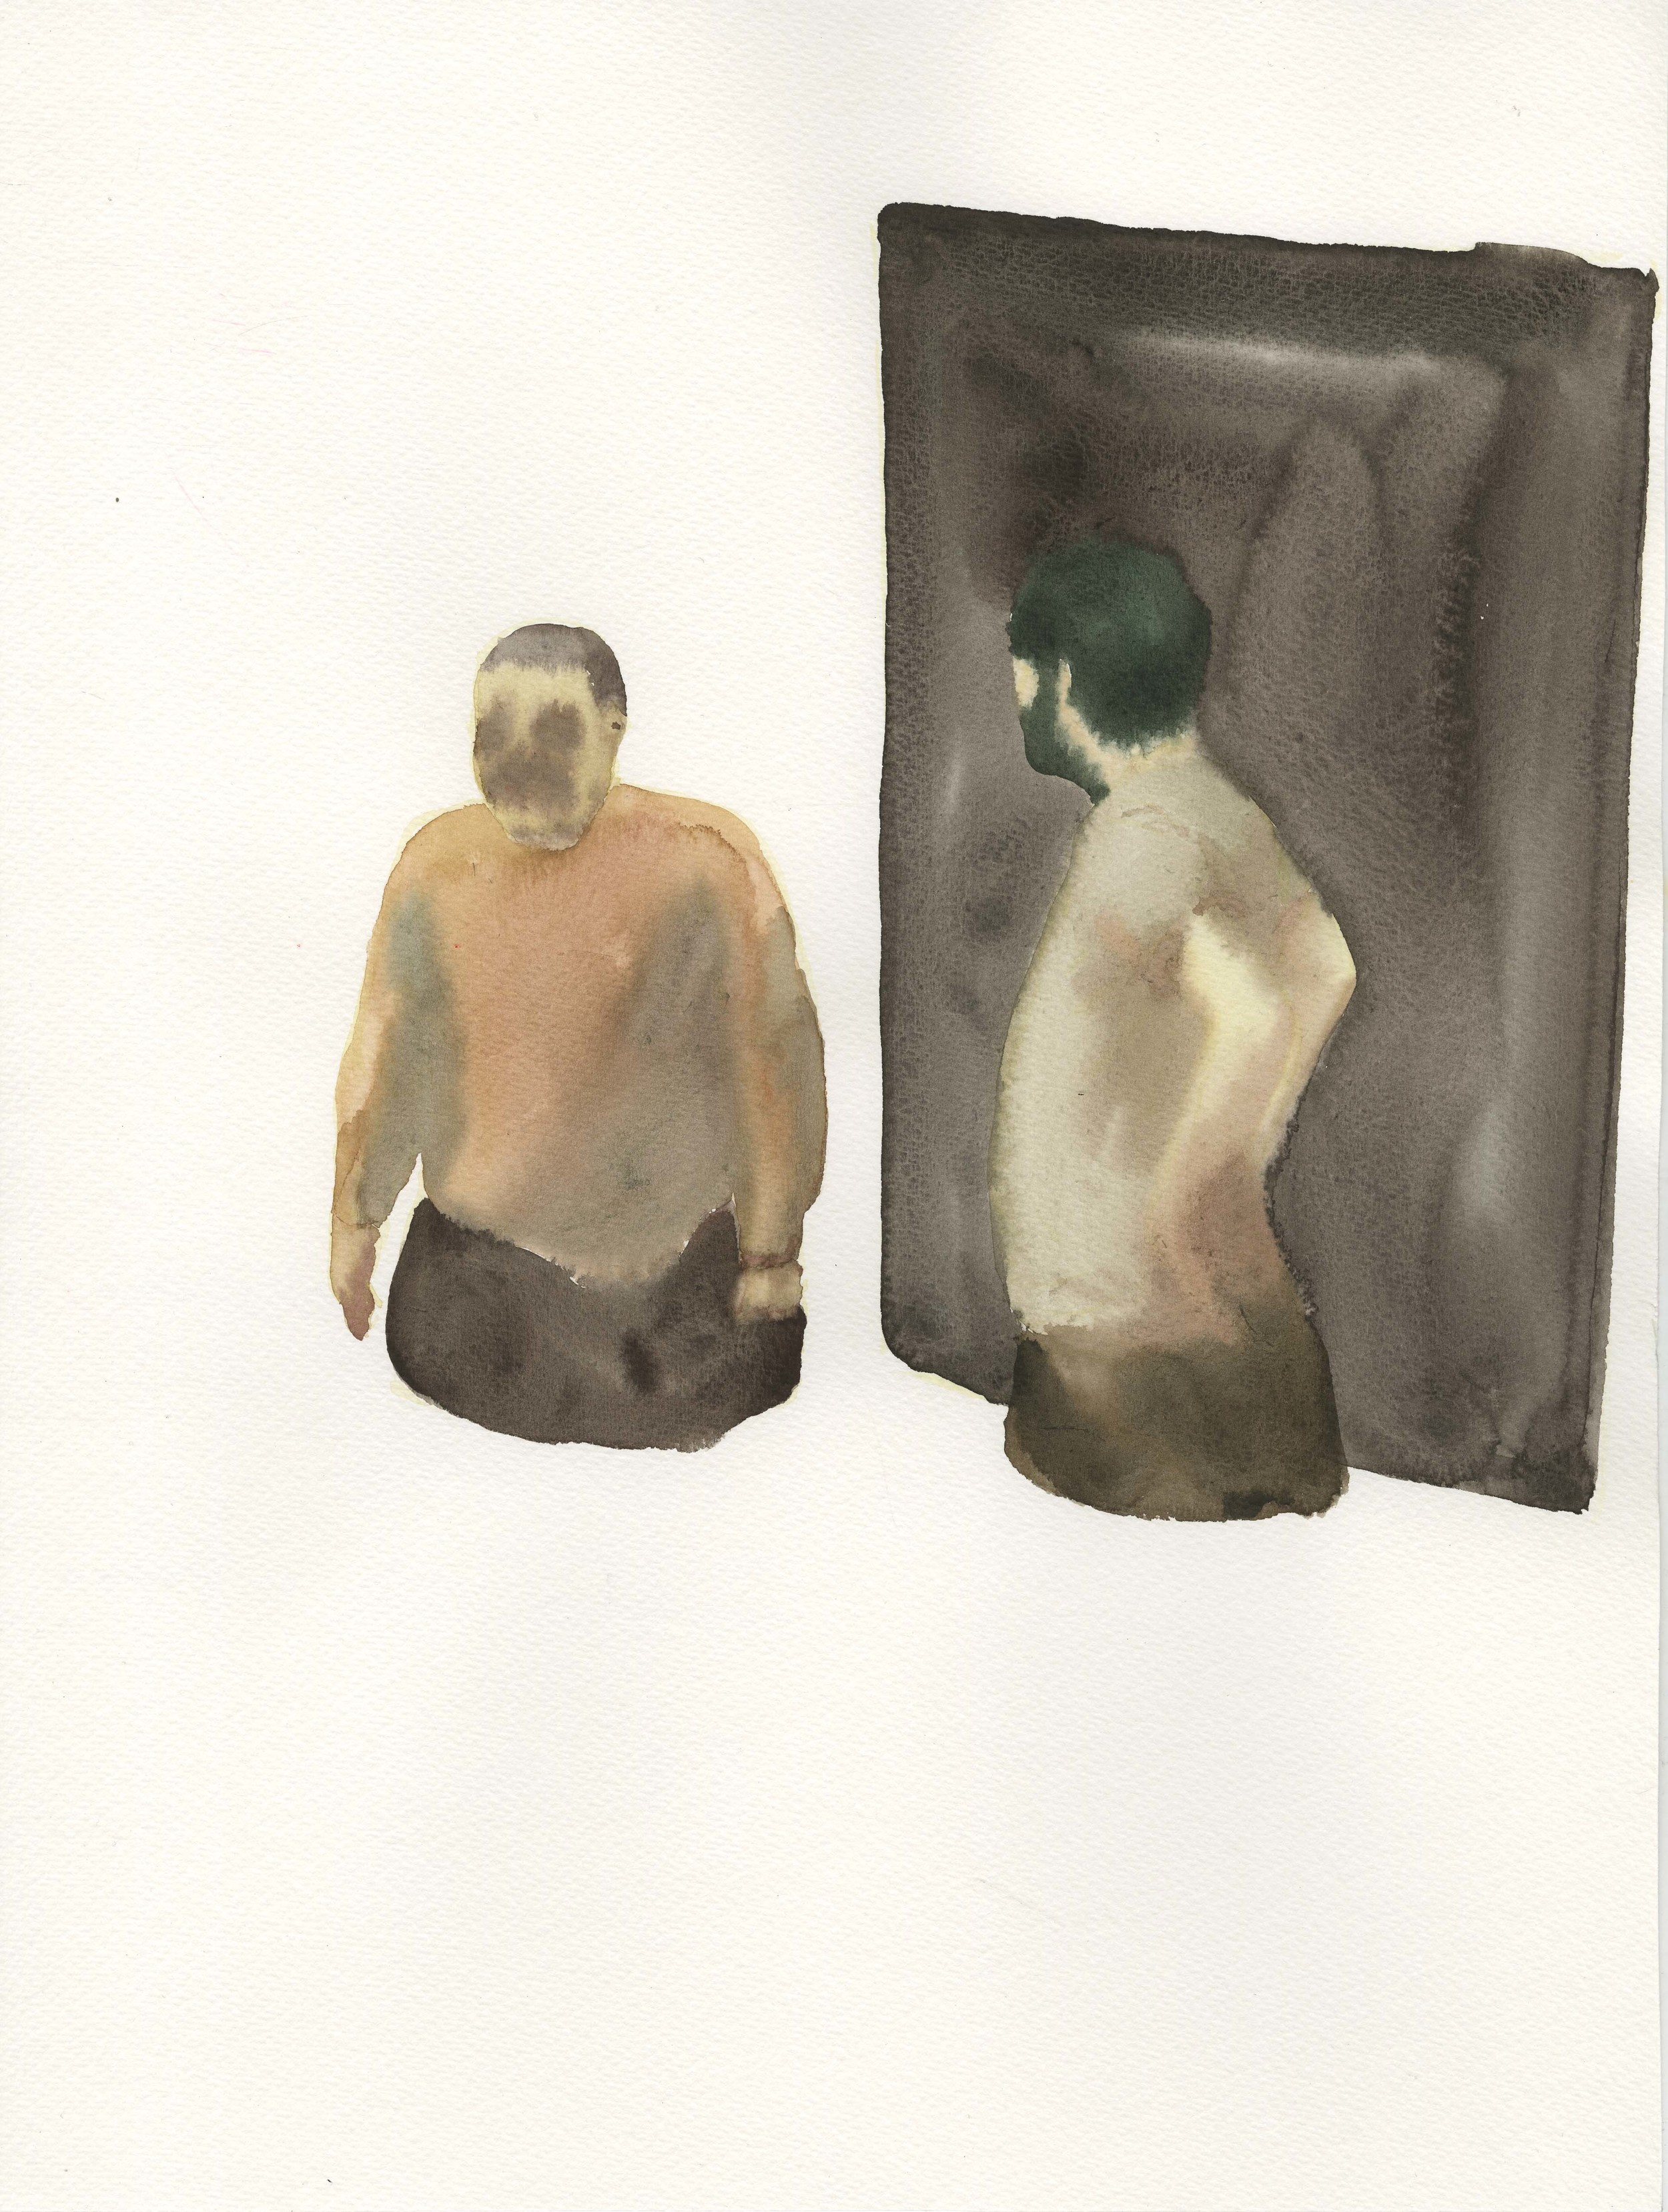 """""""One Just Stand There Staring Blankly, When Another Just Pass By…"""", 2014, Watercolor on Paper纸上水彩 16.1 x 12 in. (40.6 x 30.5 cm)"""